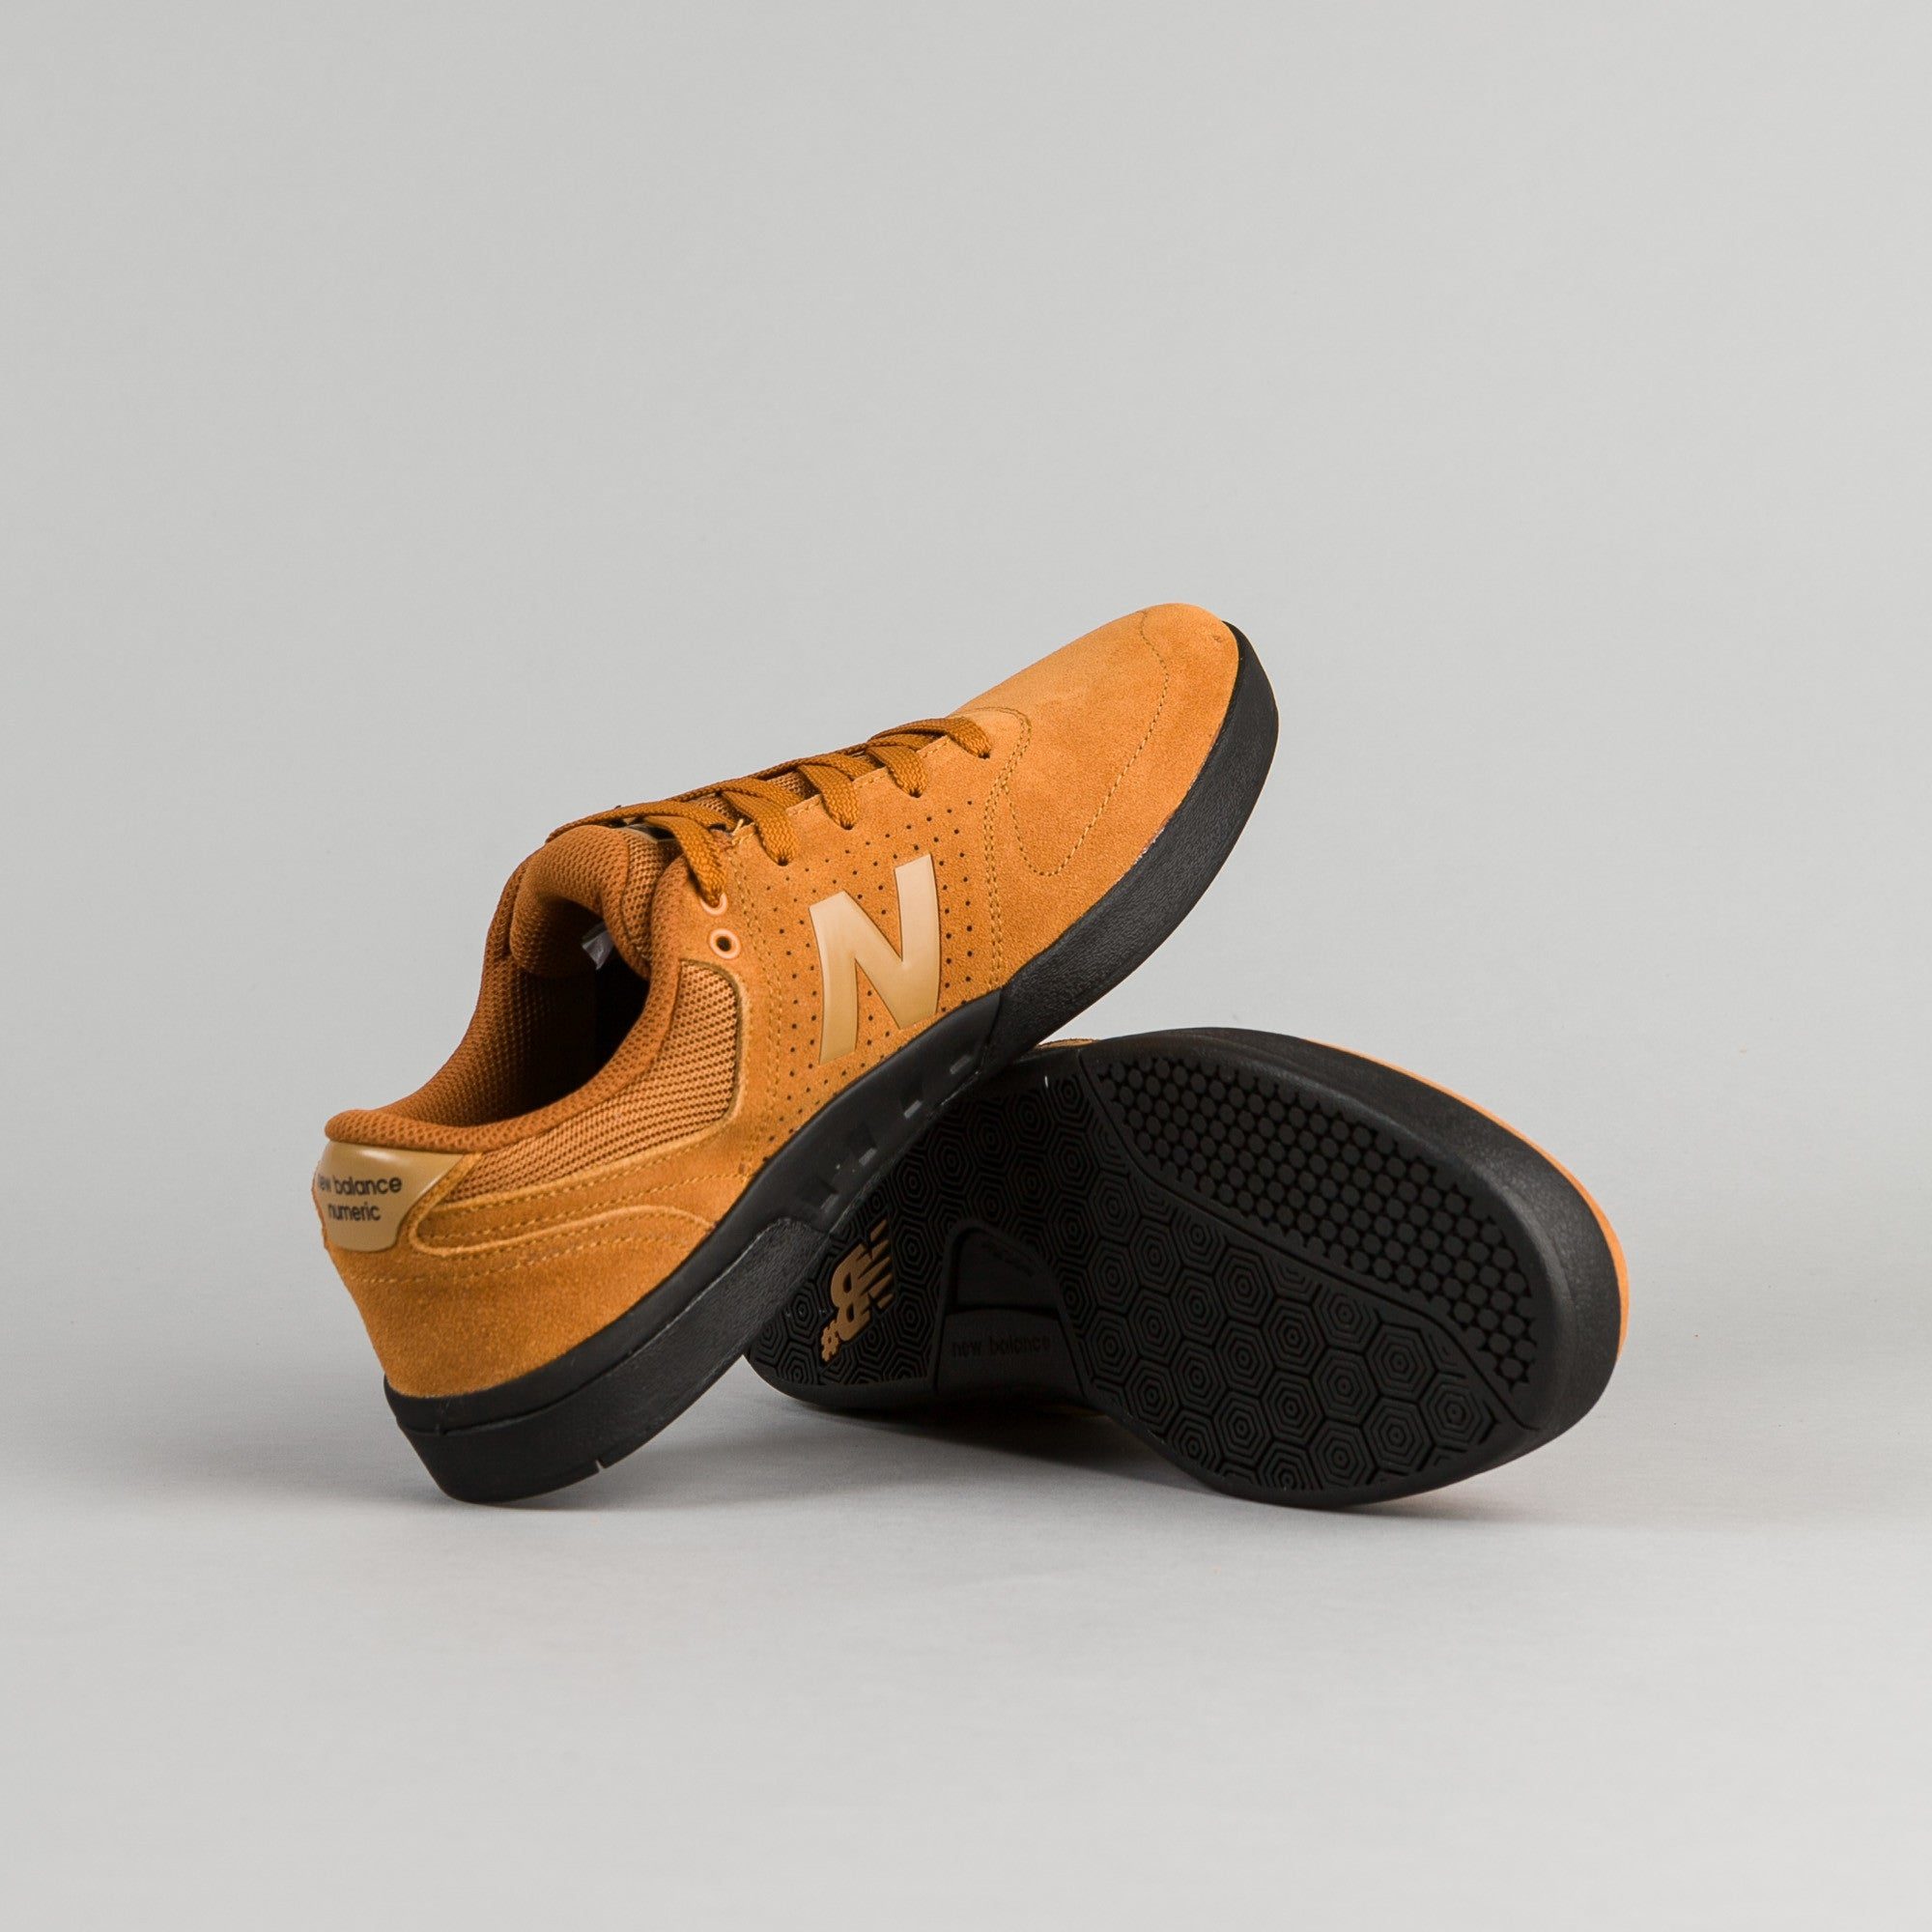 New Balance Numeric PJ Stratford 533 Shoes - Maple / Black